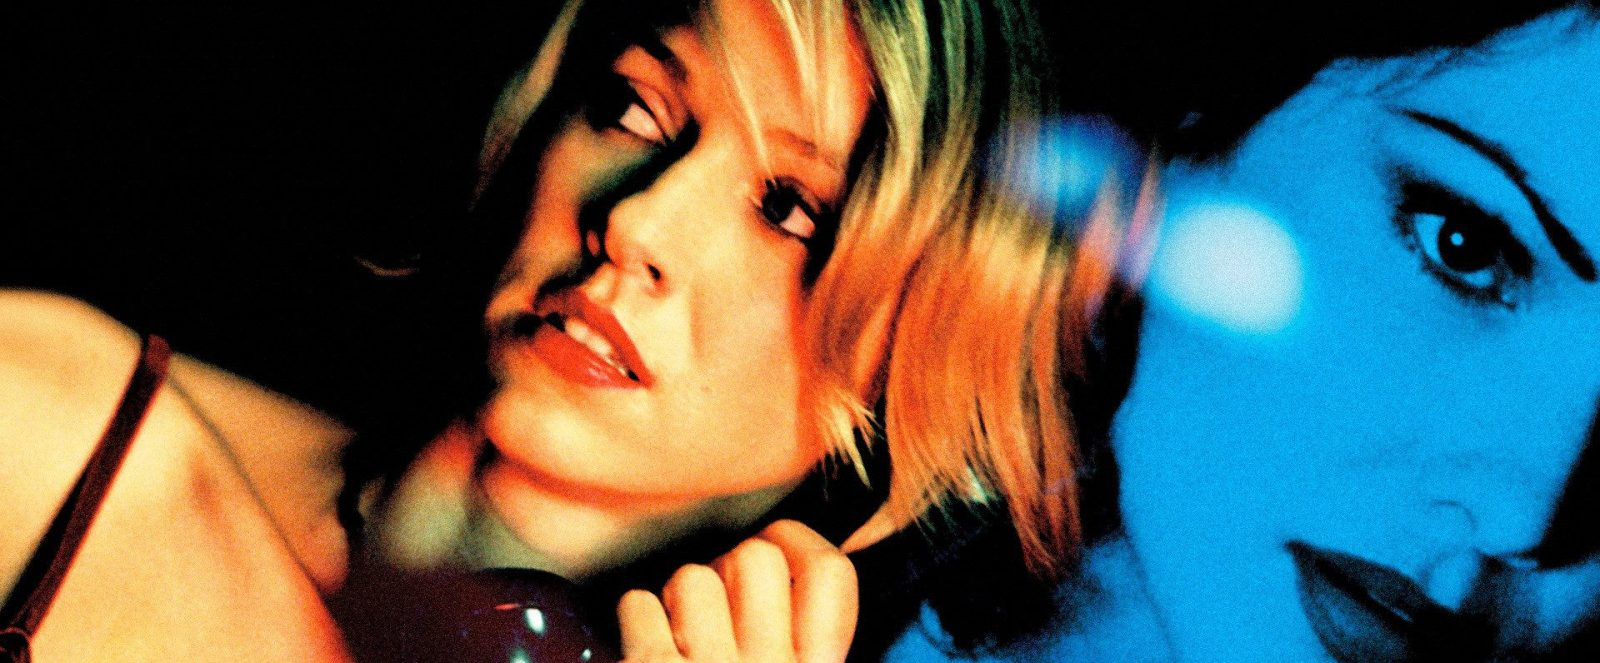 Is Mulholland Drive the Best Film of the 21st Century?